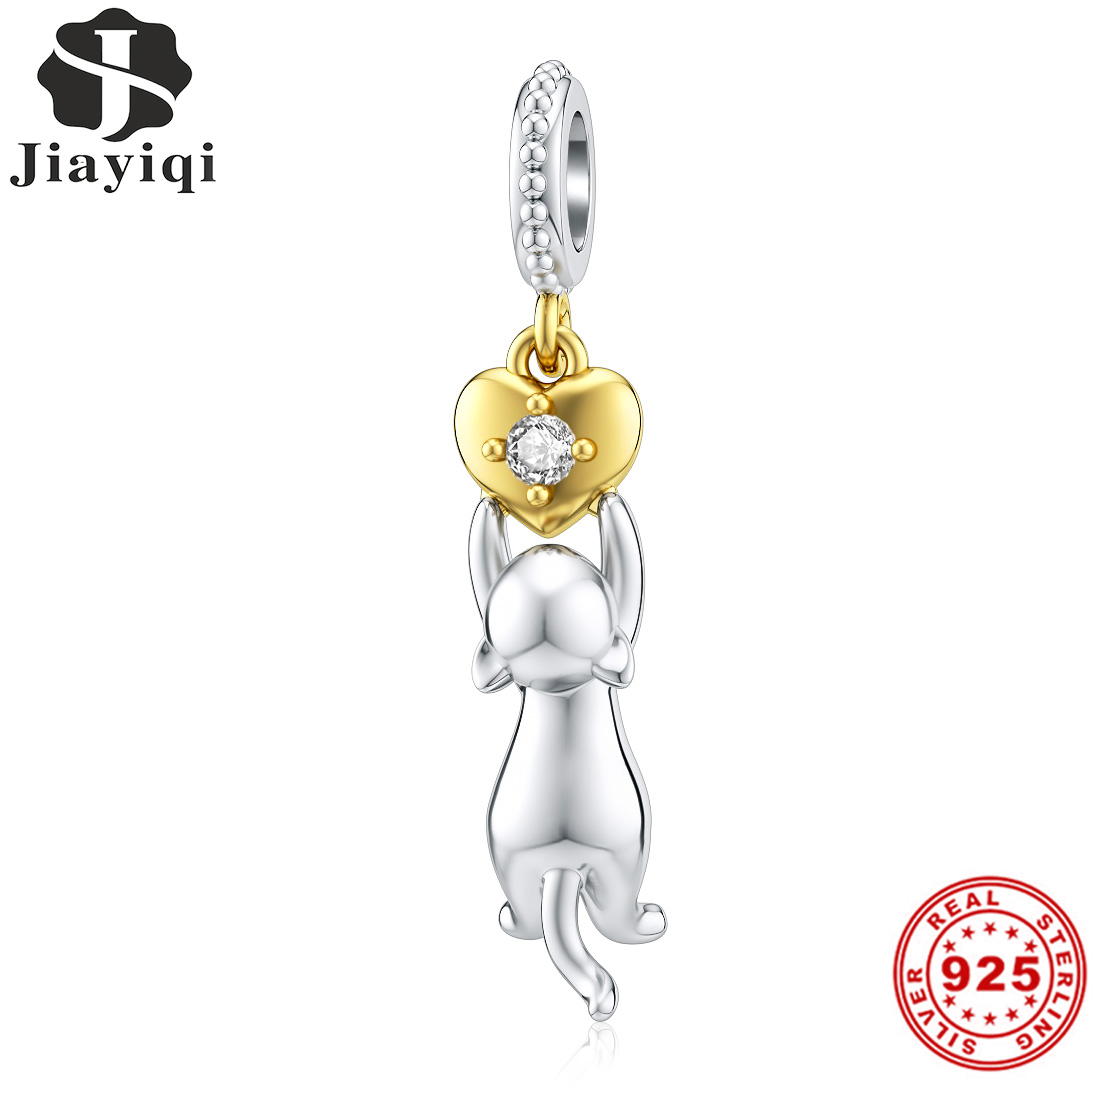 Jiayiqi 925 Silver Charms DIY Necklace Making Cute Cat Grab Heart Bead Fit Pandora Bracelet Sterling Silver Fine Jewelry Finding